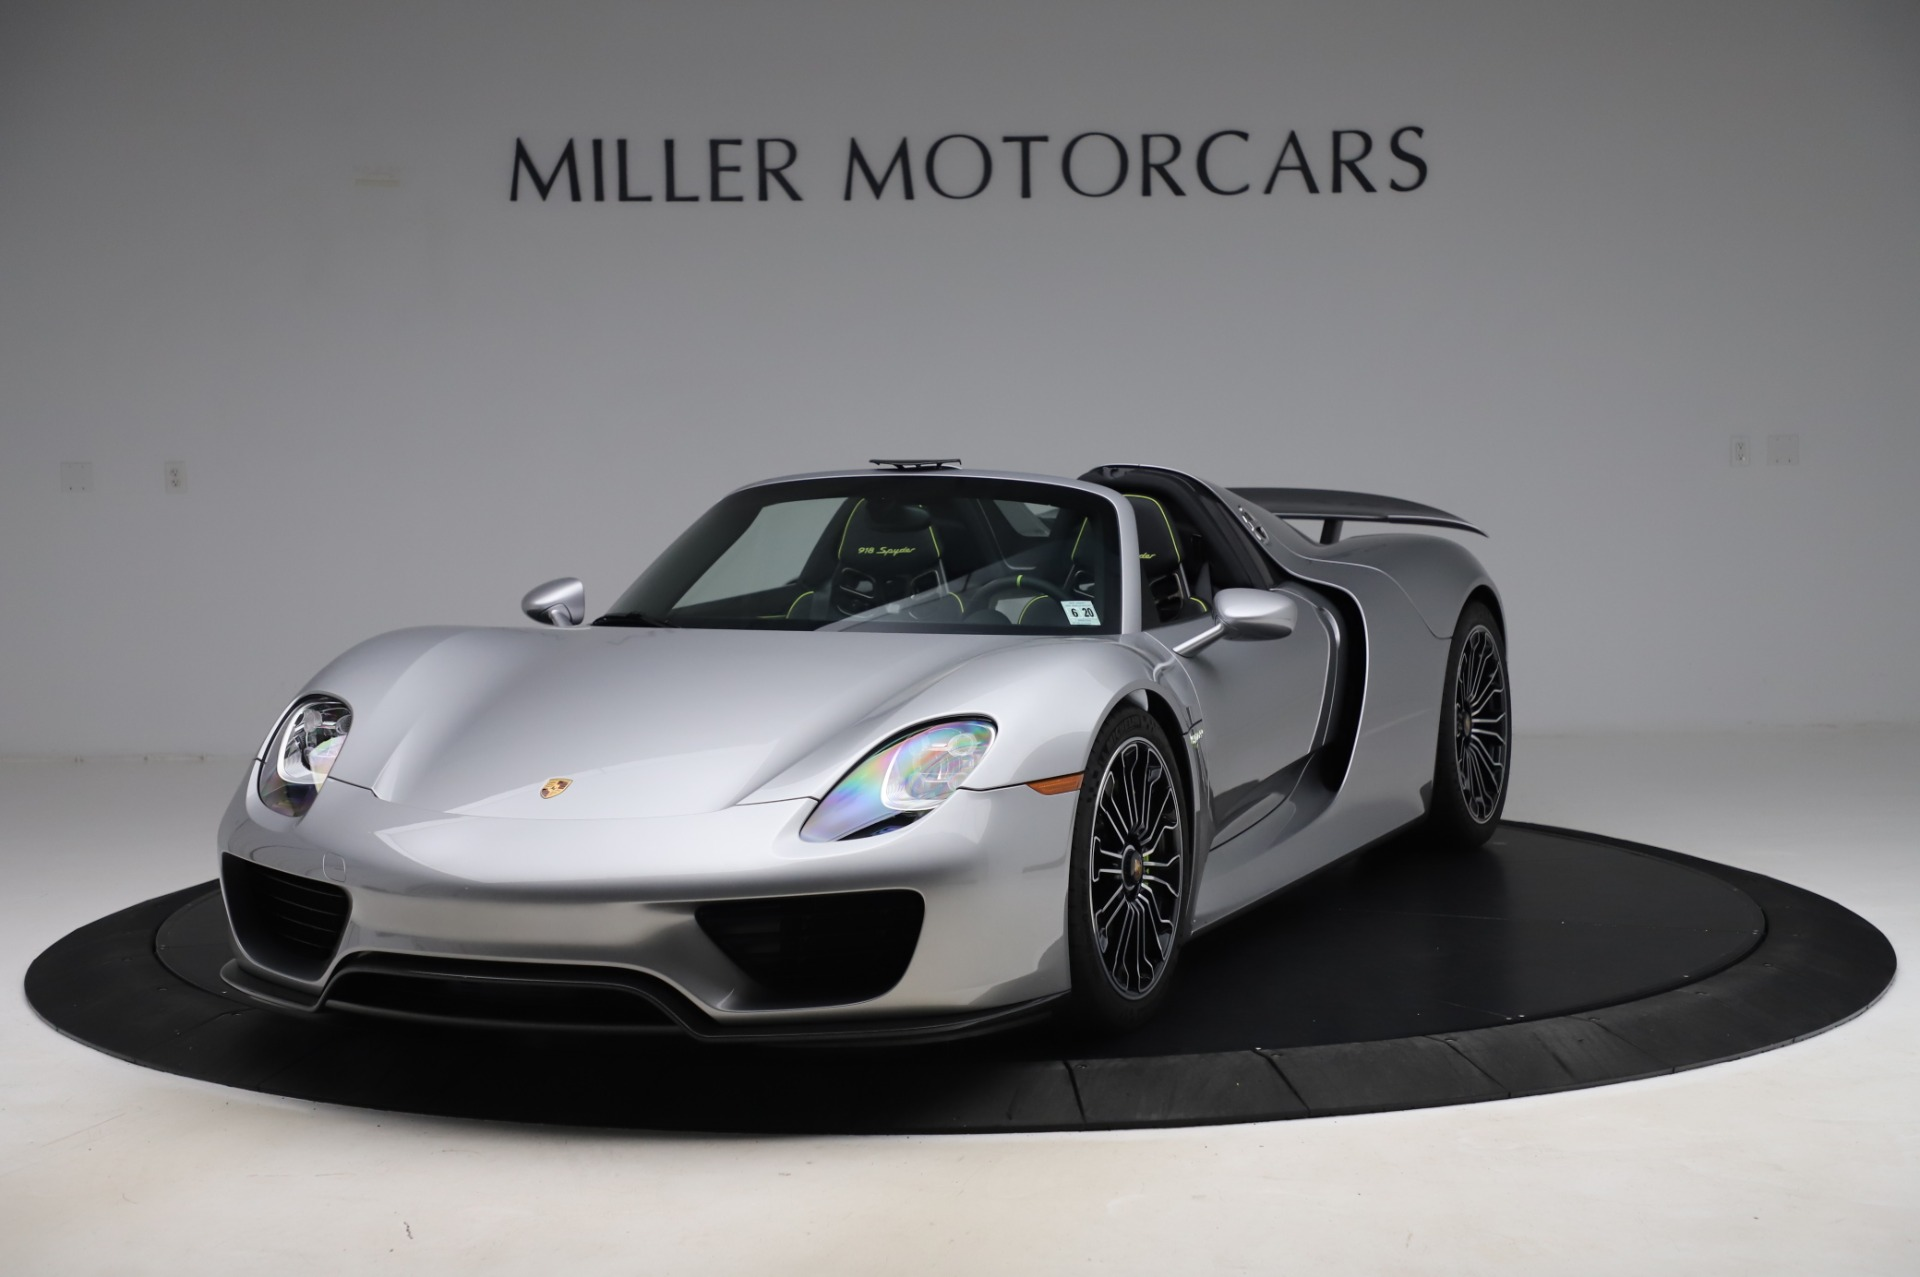 Used 2015 Porsche 918 Spyder for sale $1,389,900 at Alfa Romeo of Greenwich in Greenwich CT 06830 1